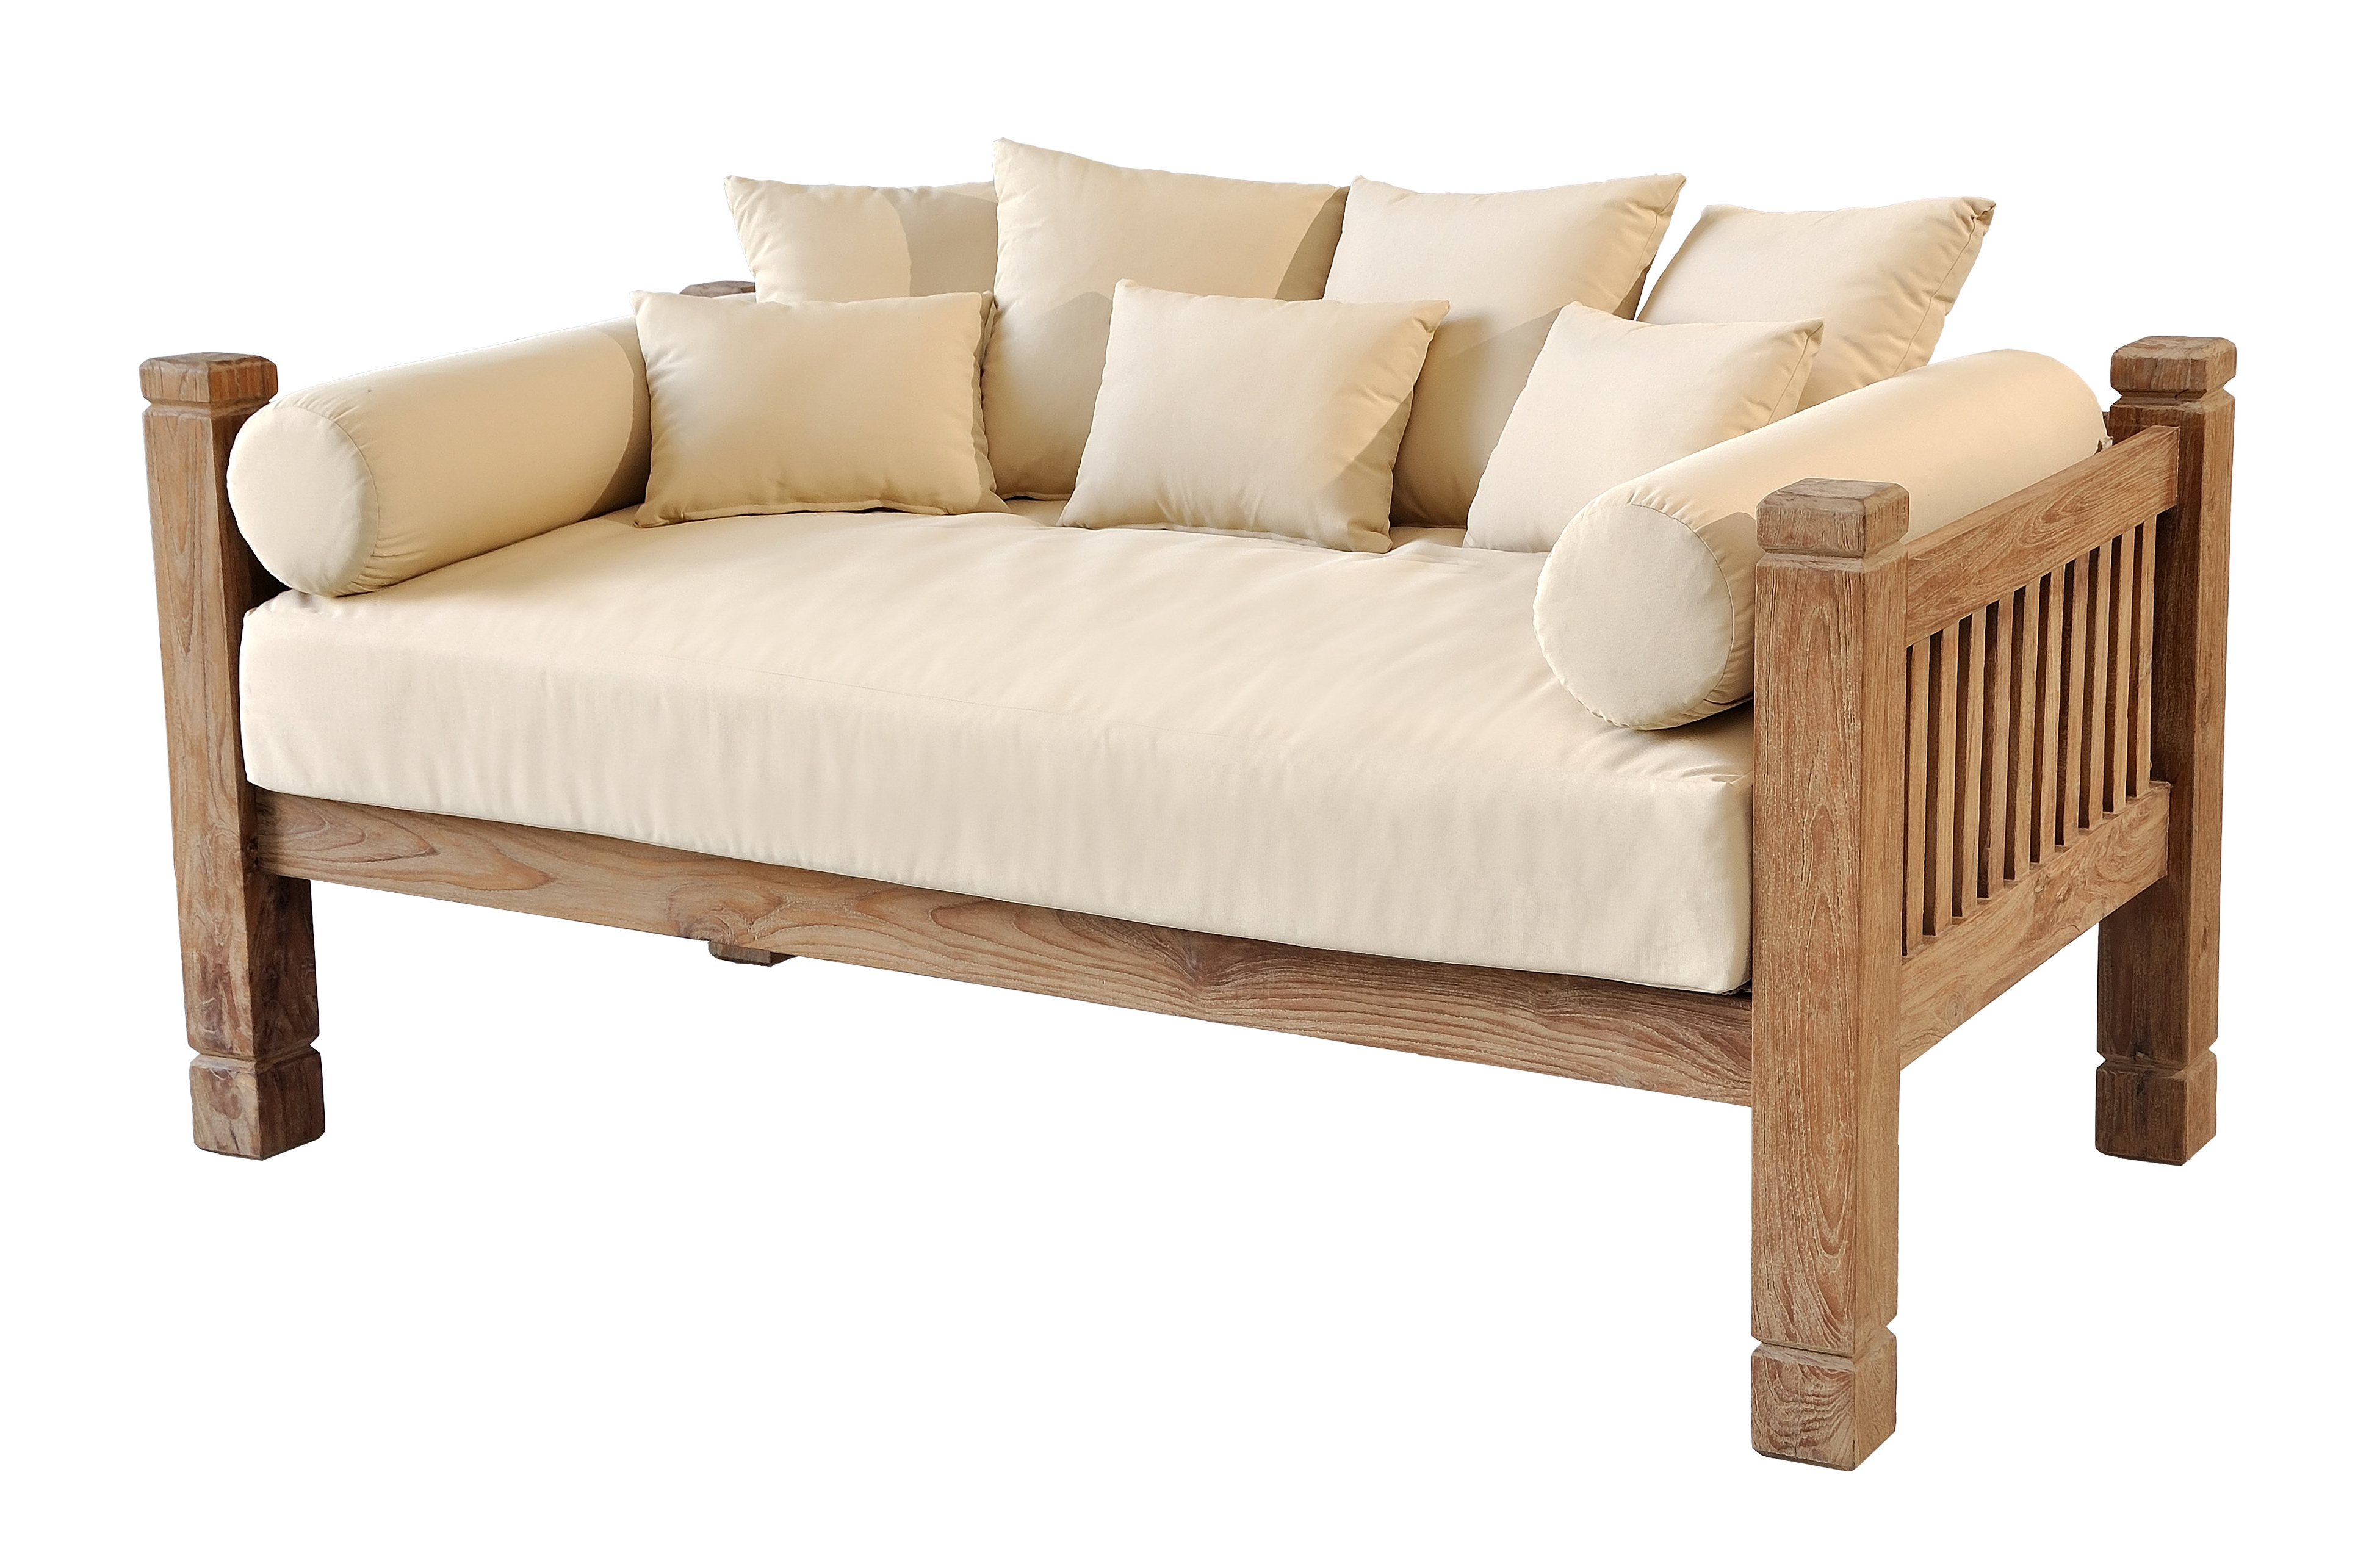 Well Liked Perine Teak Patio Daybed With Cushions Throughout Grosvenor Bamboo Patio Daybeds With Cushions (View 19 of 20)